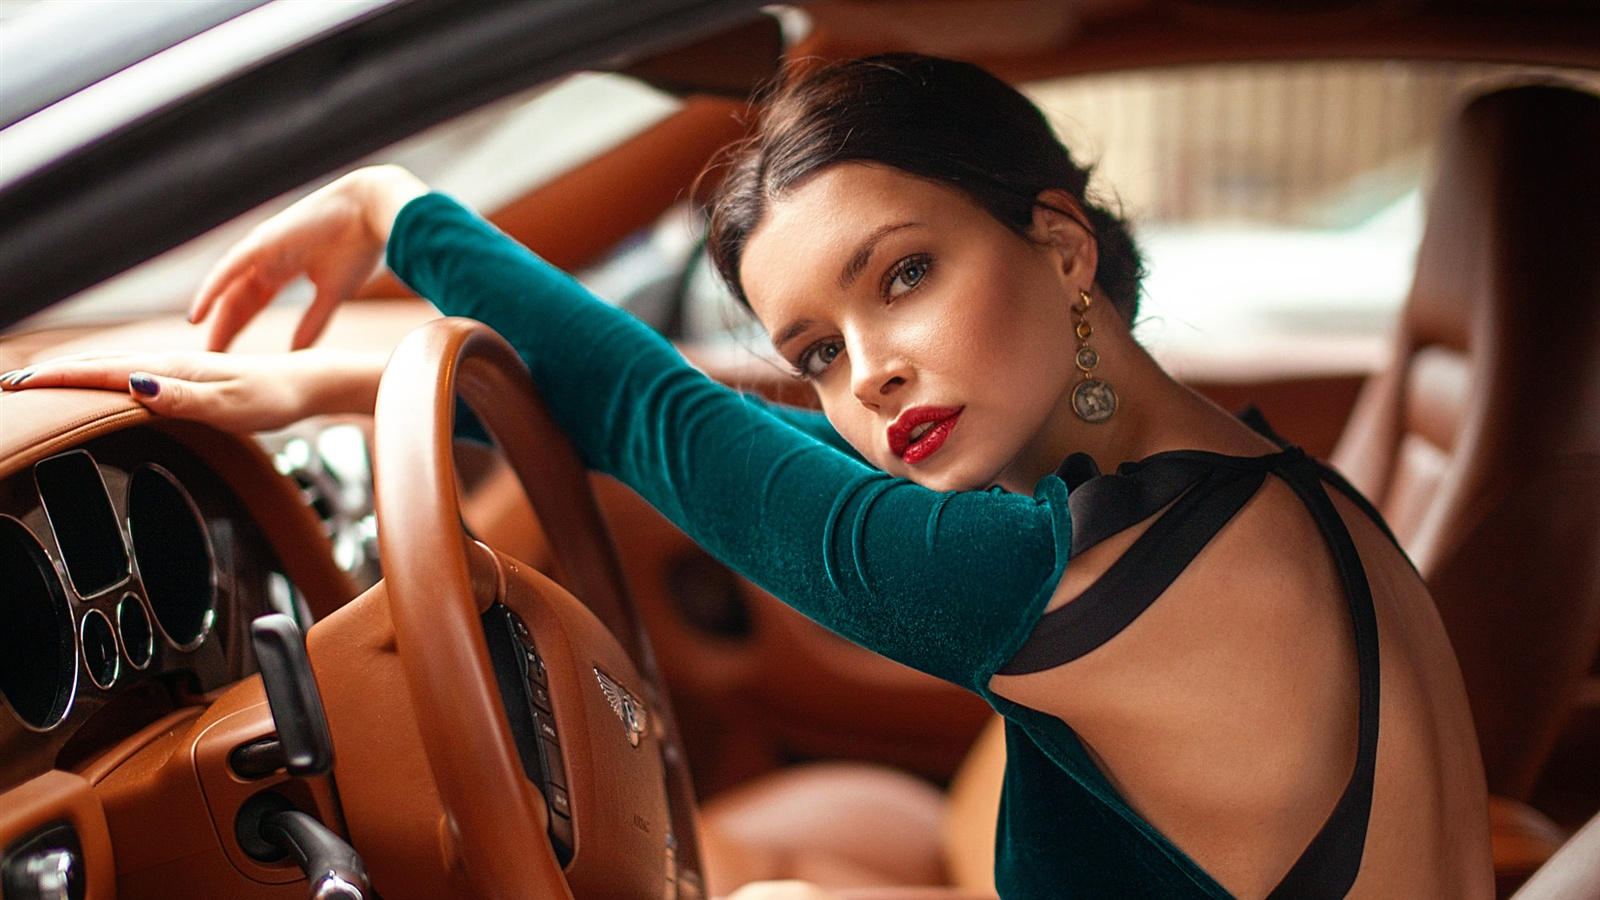 Girl In Red Dress Wallpaper Wallpaper Bentley Girl Driving 1920x1200 Hd Picture Image